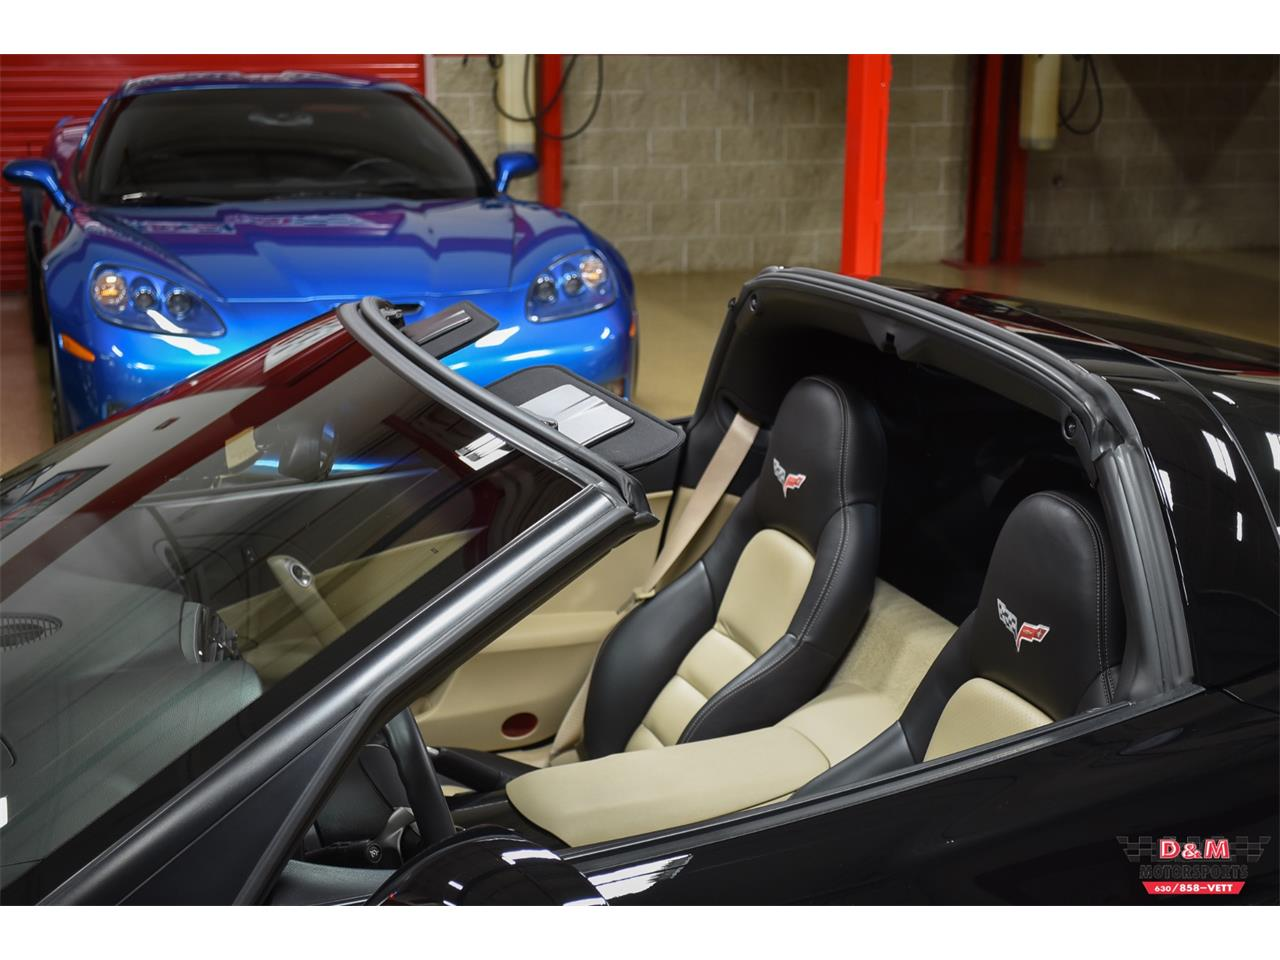 Large Picture of 2010 Chevrolet Corvette located in Glen Ellyn Illinois - $37,995.00 Offered by D & M Motorsports - PUJ0